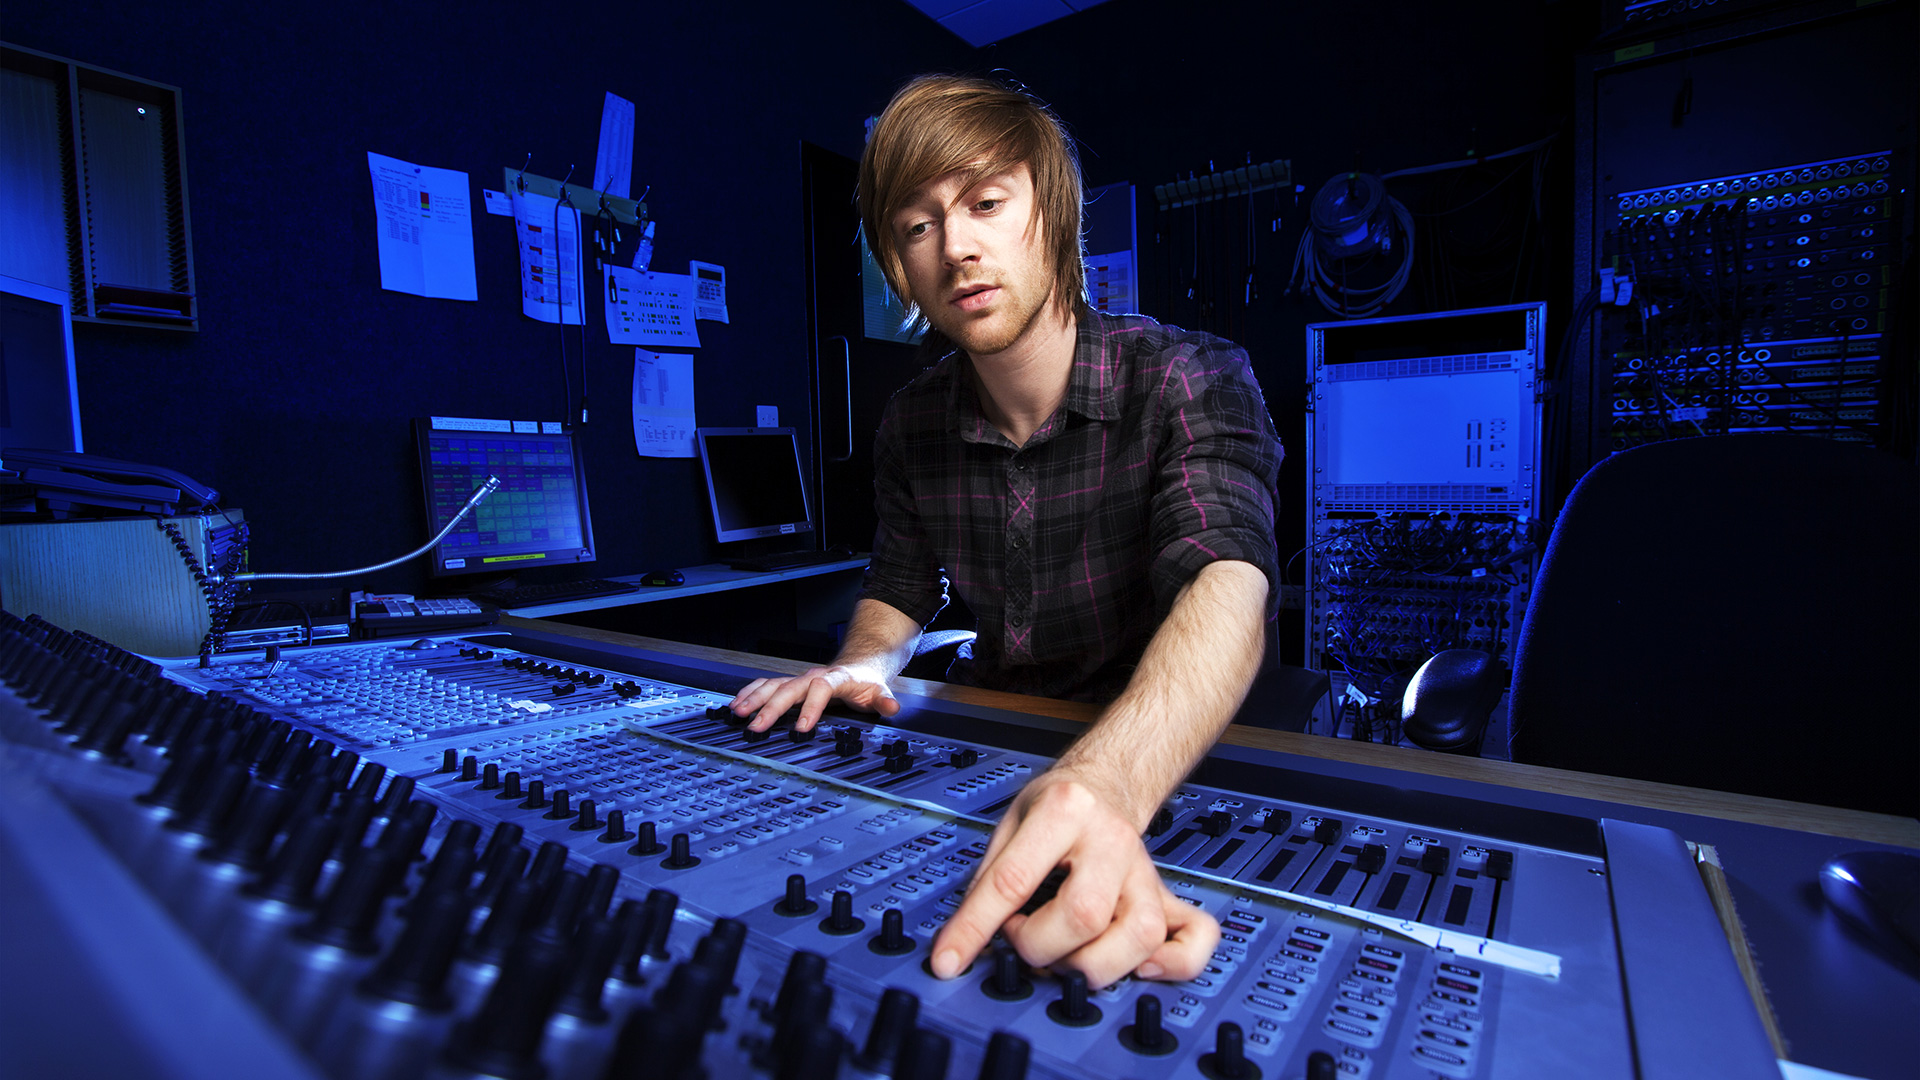 A man is at a mixing desk in a darkly lit studio.